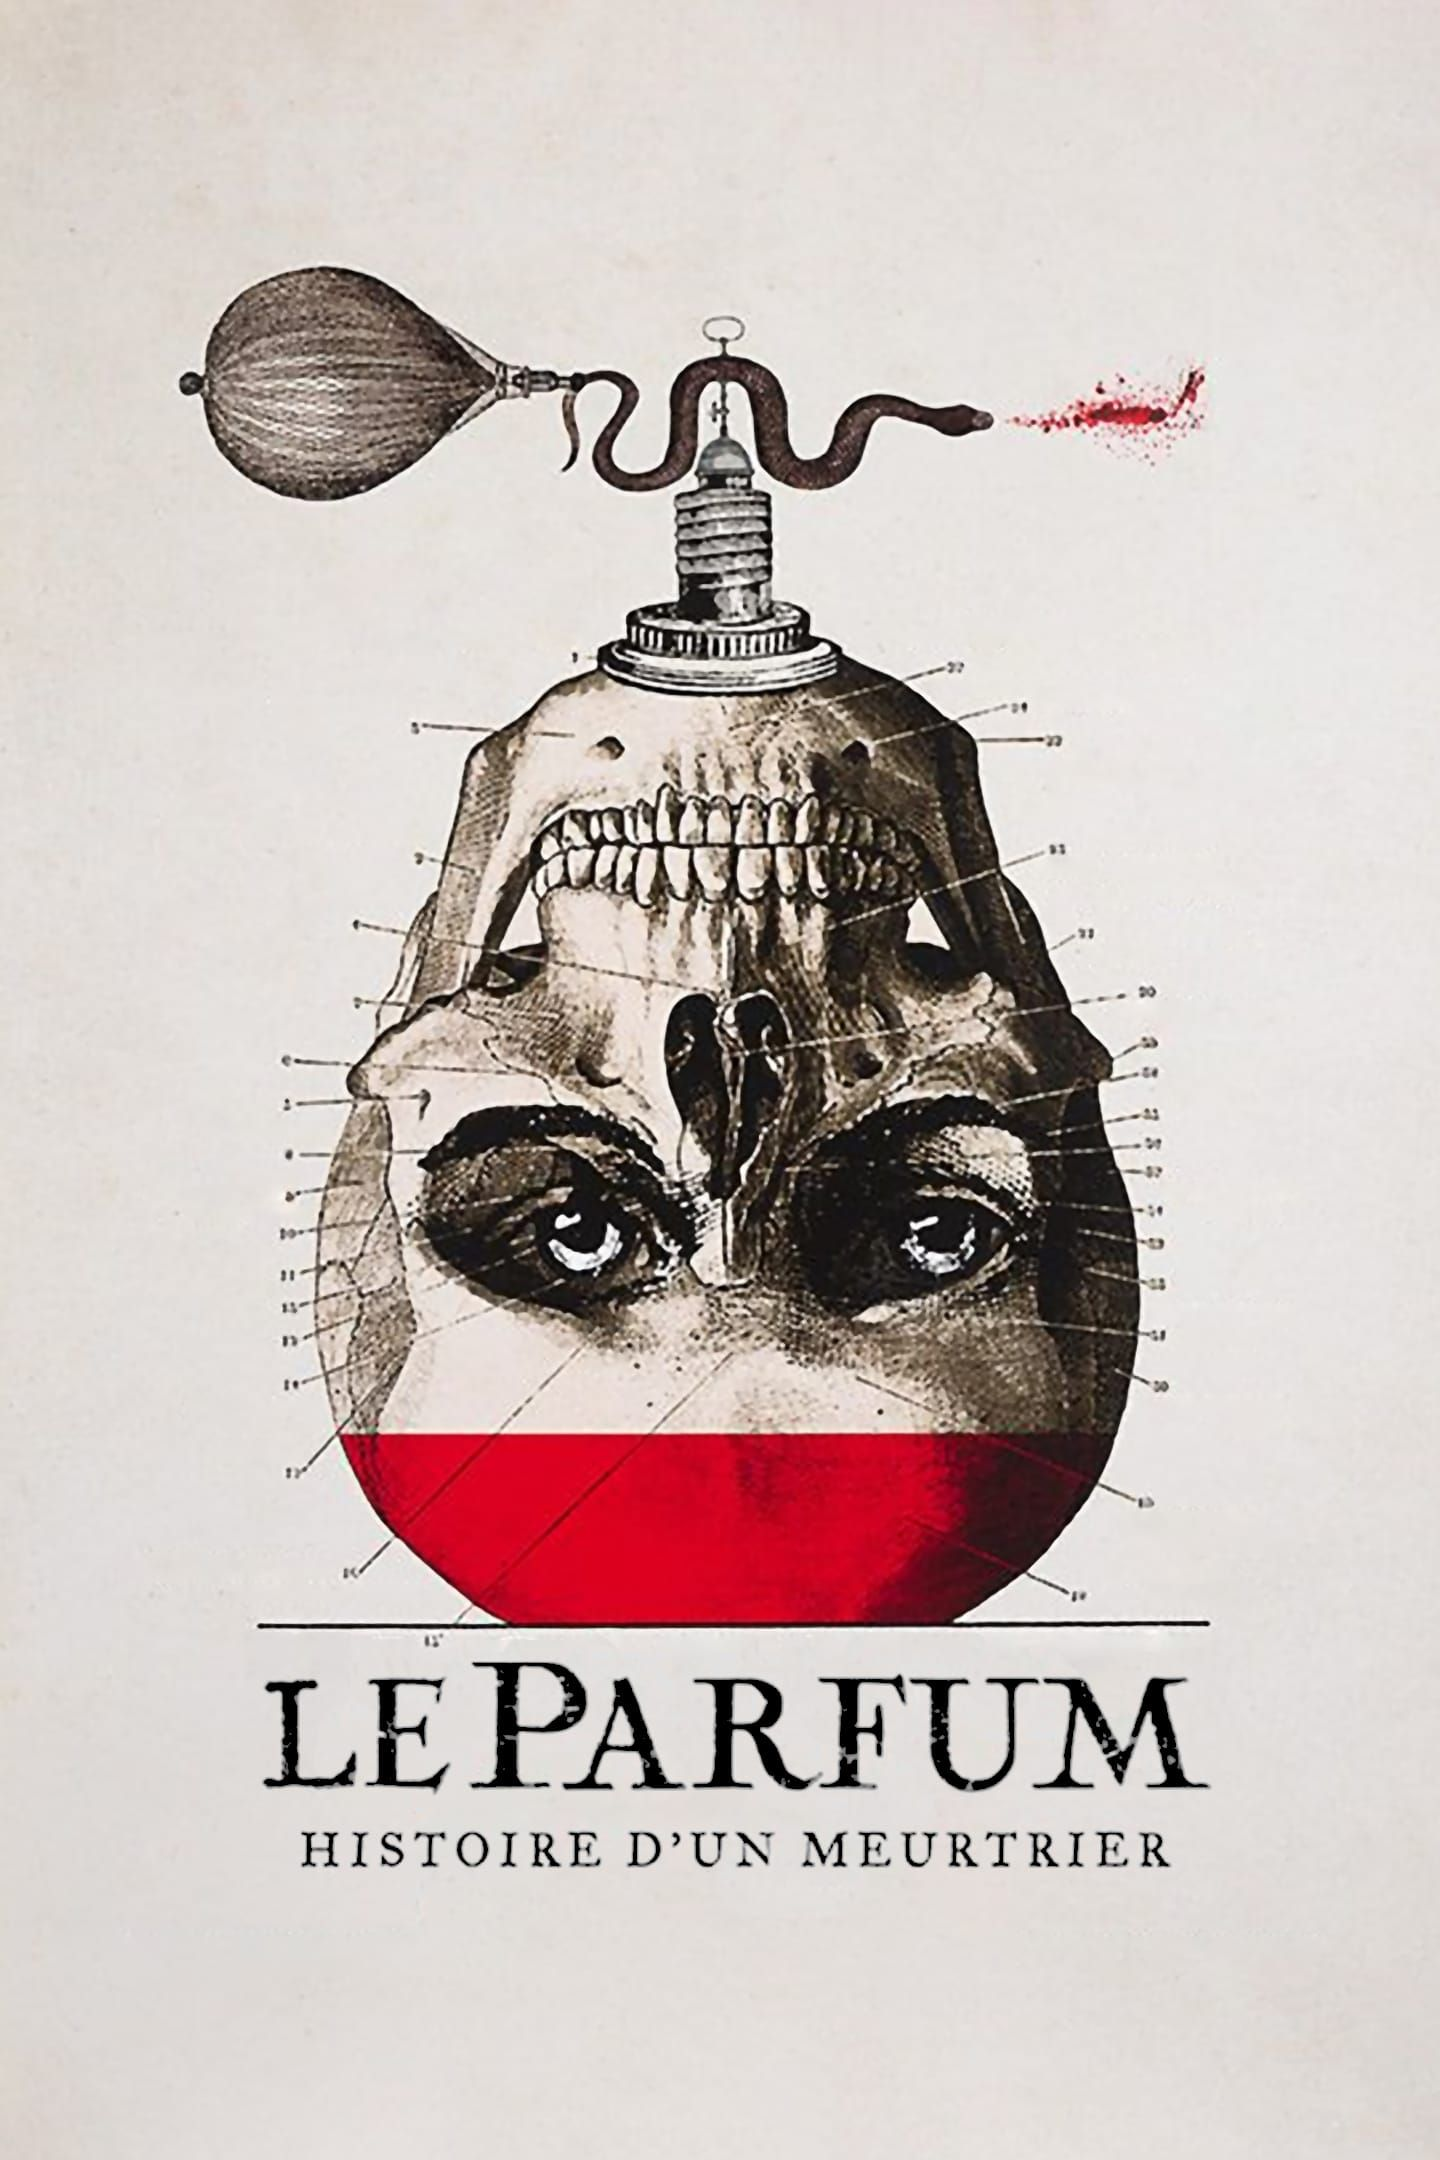 le perfume full movie free download